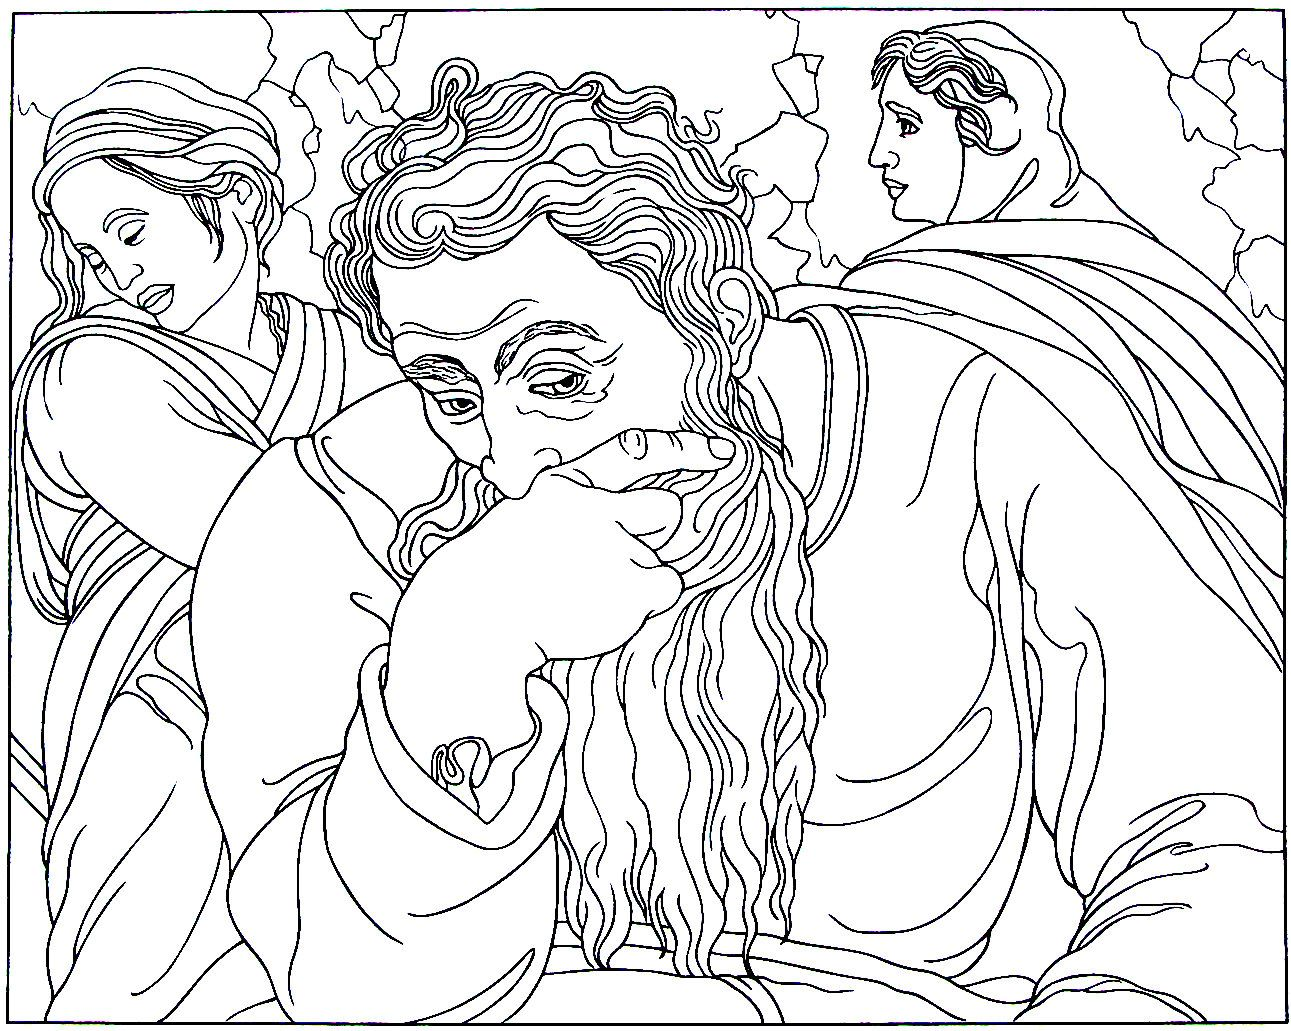 Jeremiah From The Sistine Chapel Painting By Michelangelo Bounarroti Printable Coloring Book Page Free Coloring Pages Dragon Coloring Page Coloring Pages